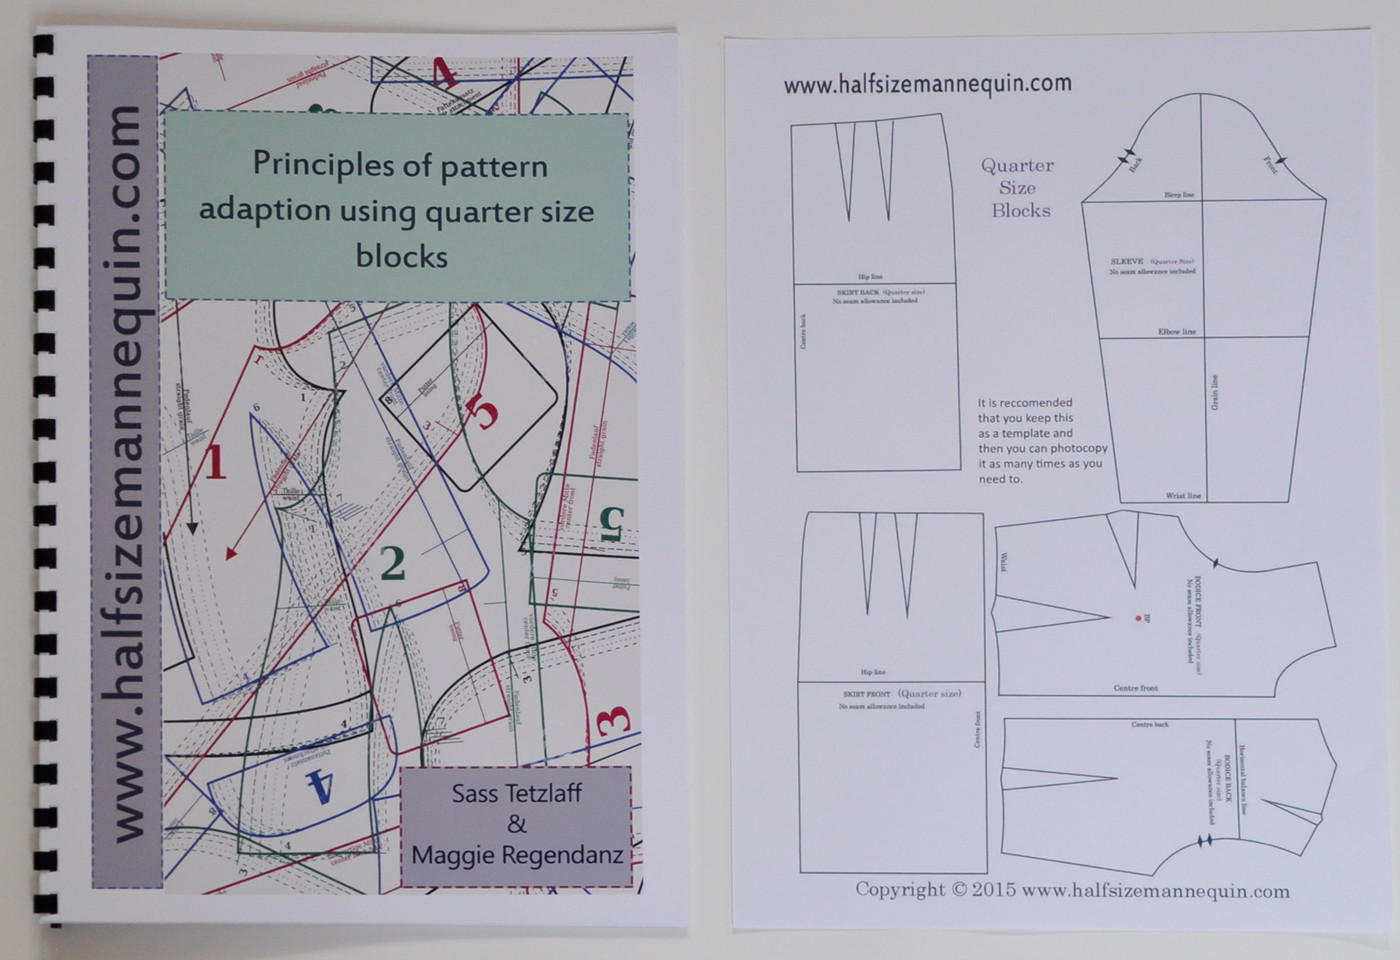 Principles of pattern adaptation using quarter size blocks booklet  (Including quarter size block templates)